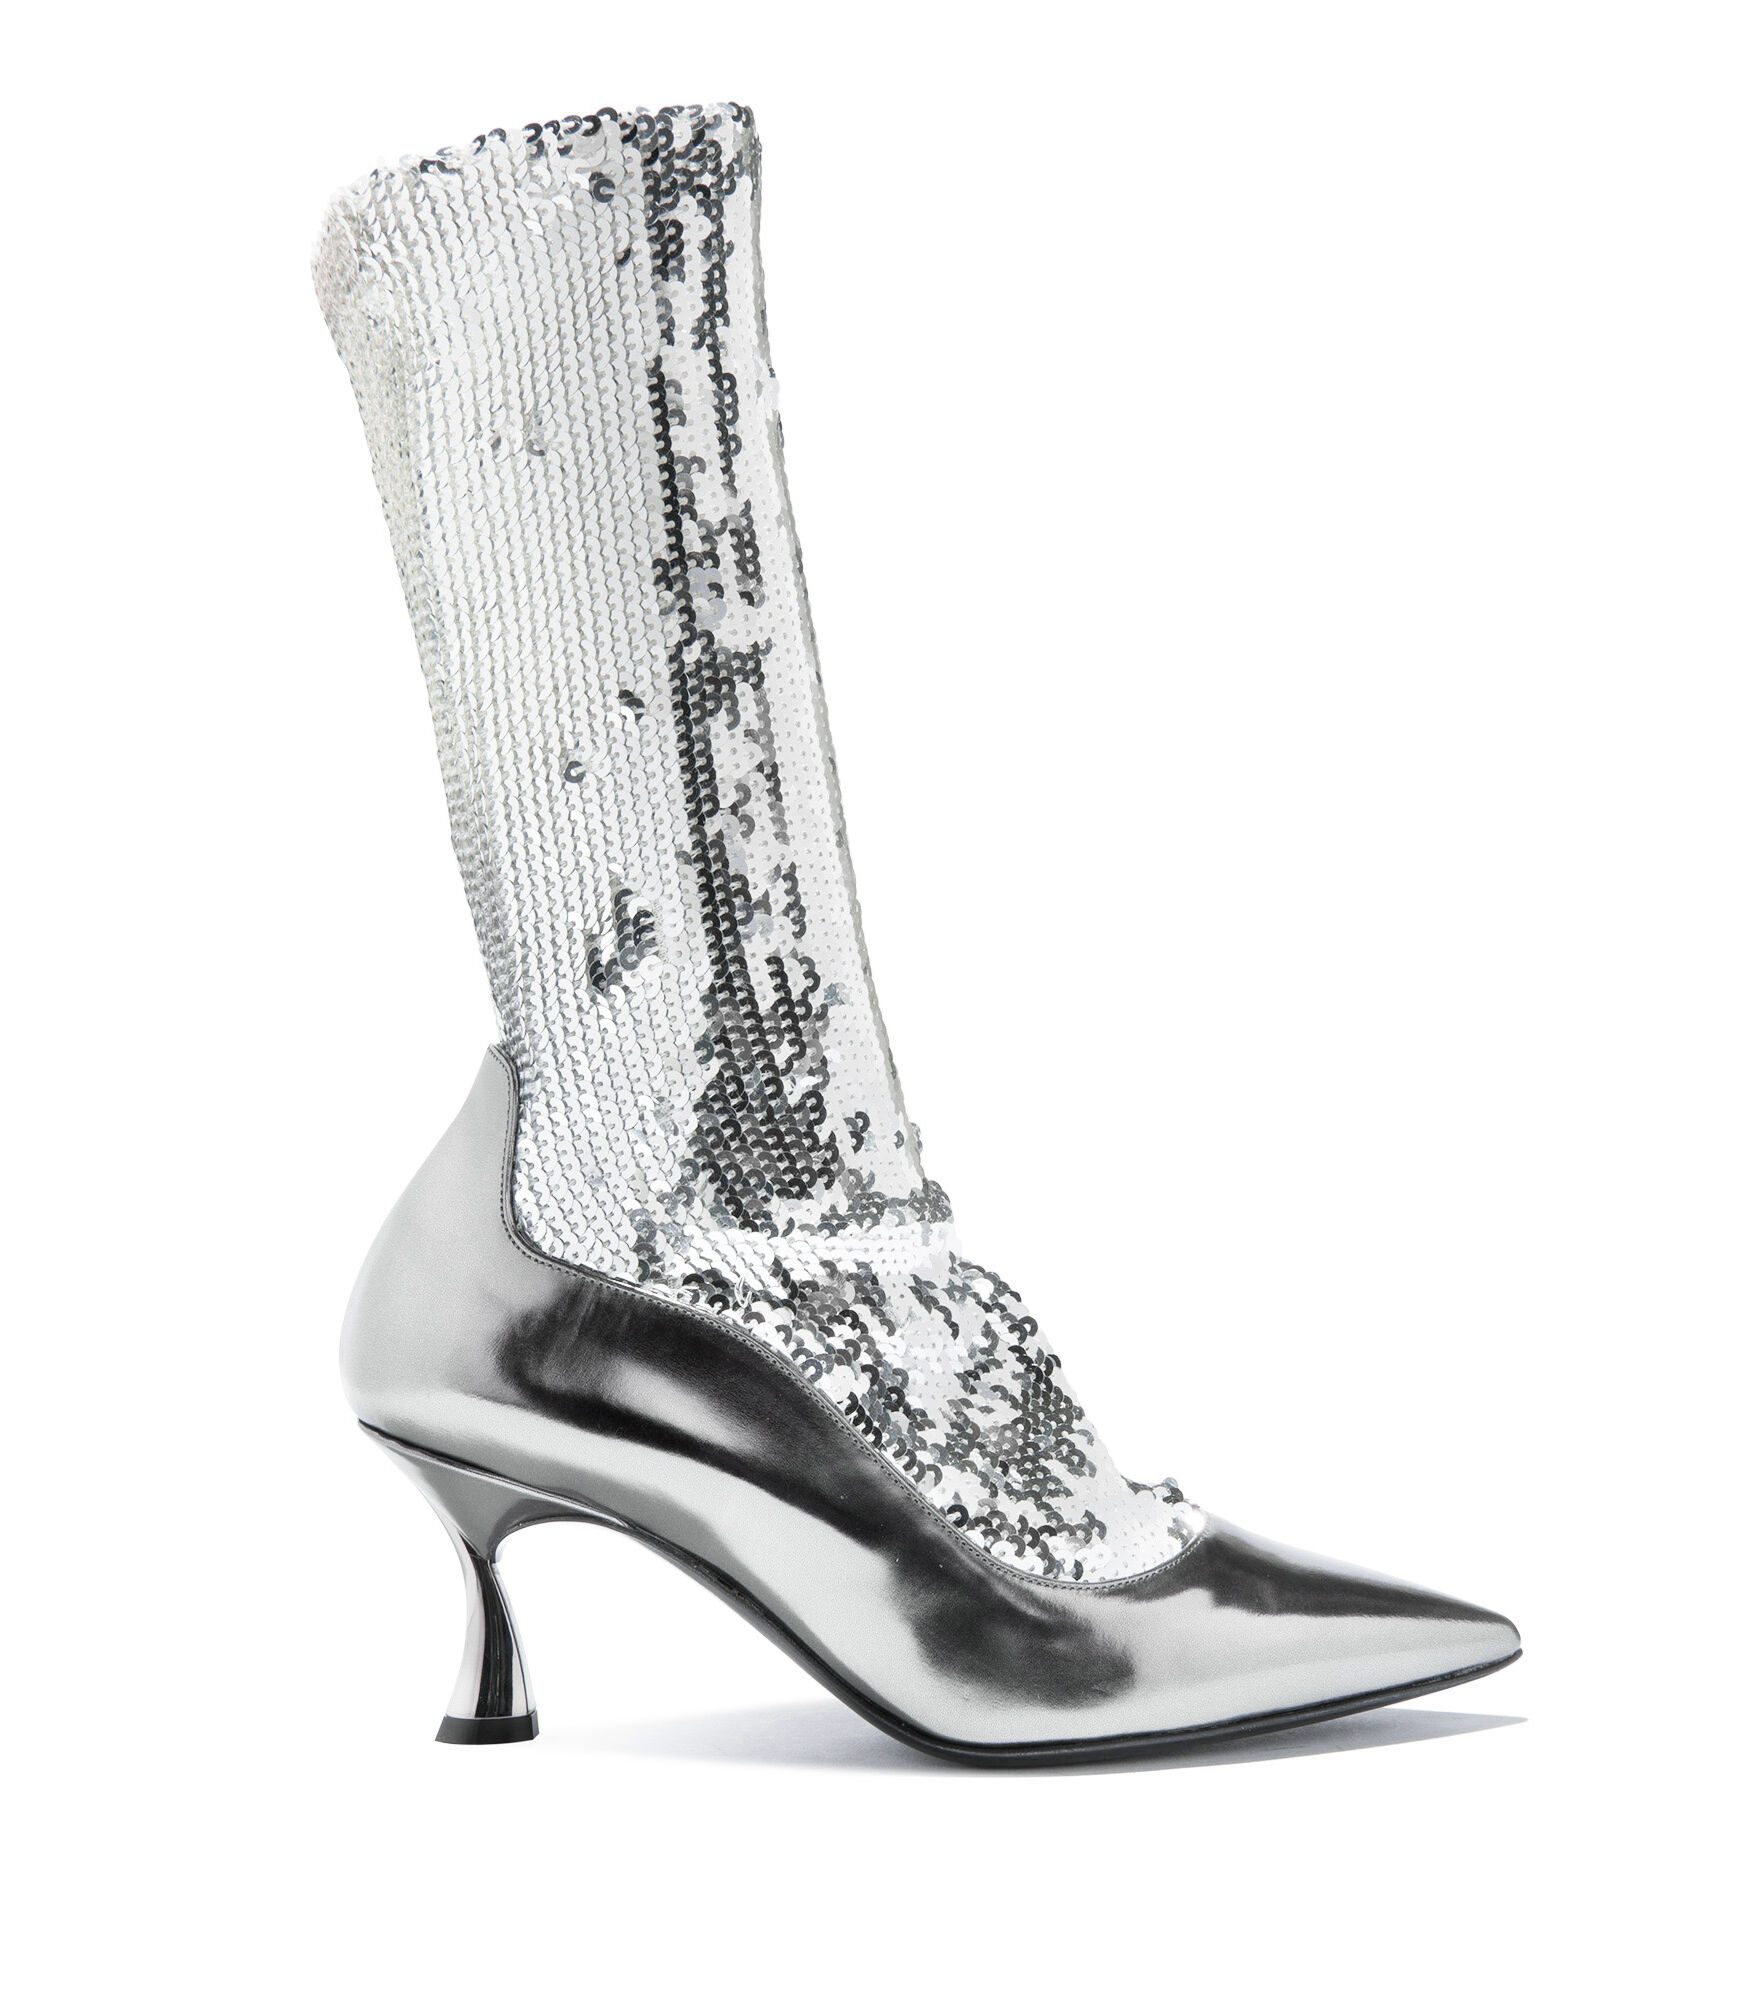 Casadei Ankle Boots - Kitten Blade Silver Elasticated socks covered in sequins